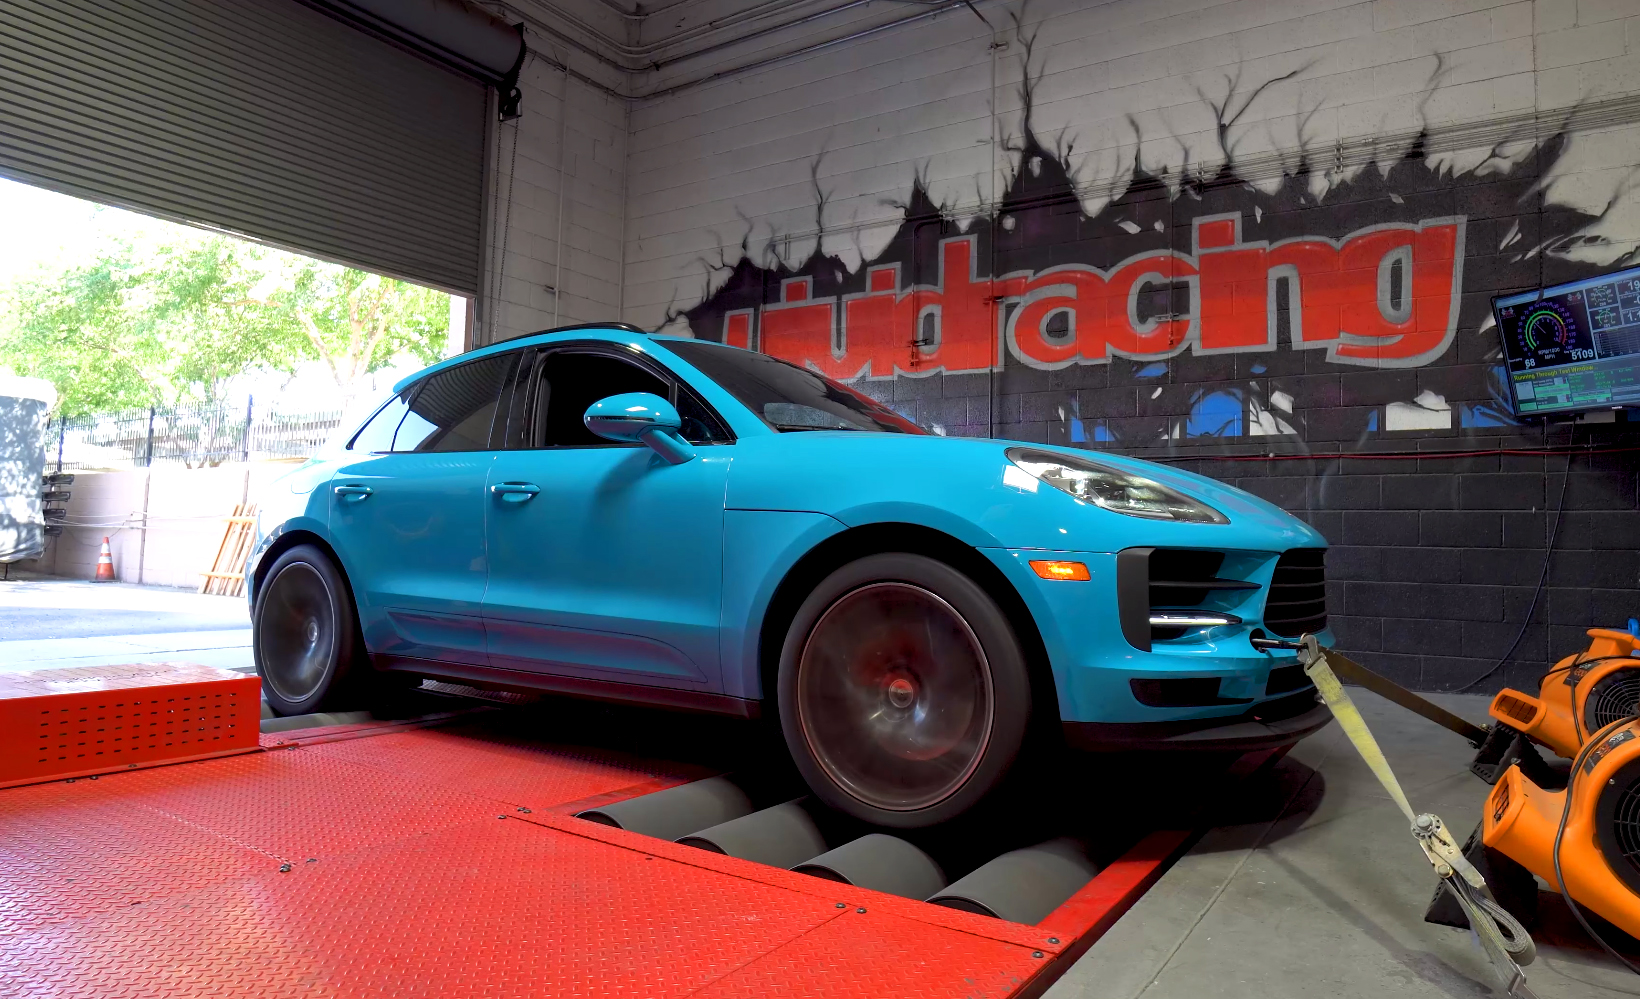 VR Tuned ECU Flash Tune Porsche Macan S 3.0L Turbo 348hp 2019-2020 - VRT-MACAN-30-348